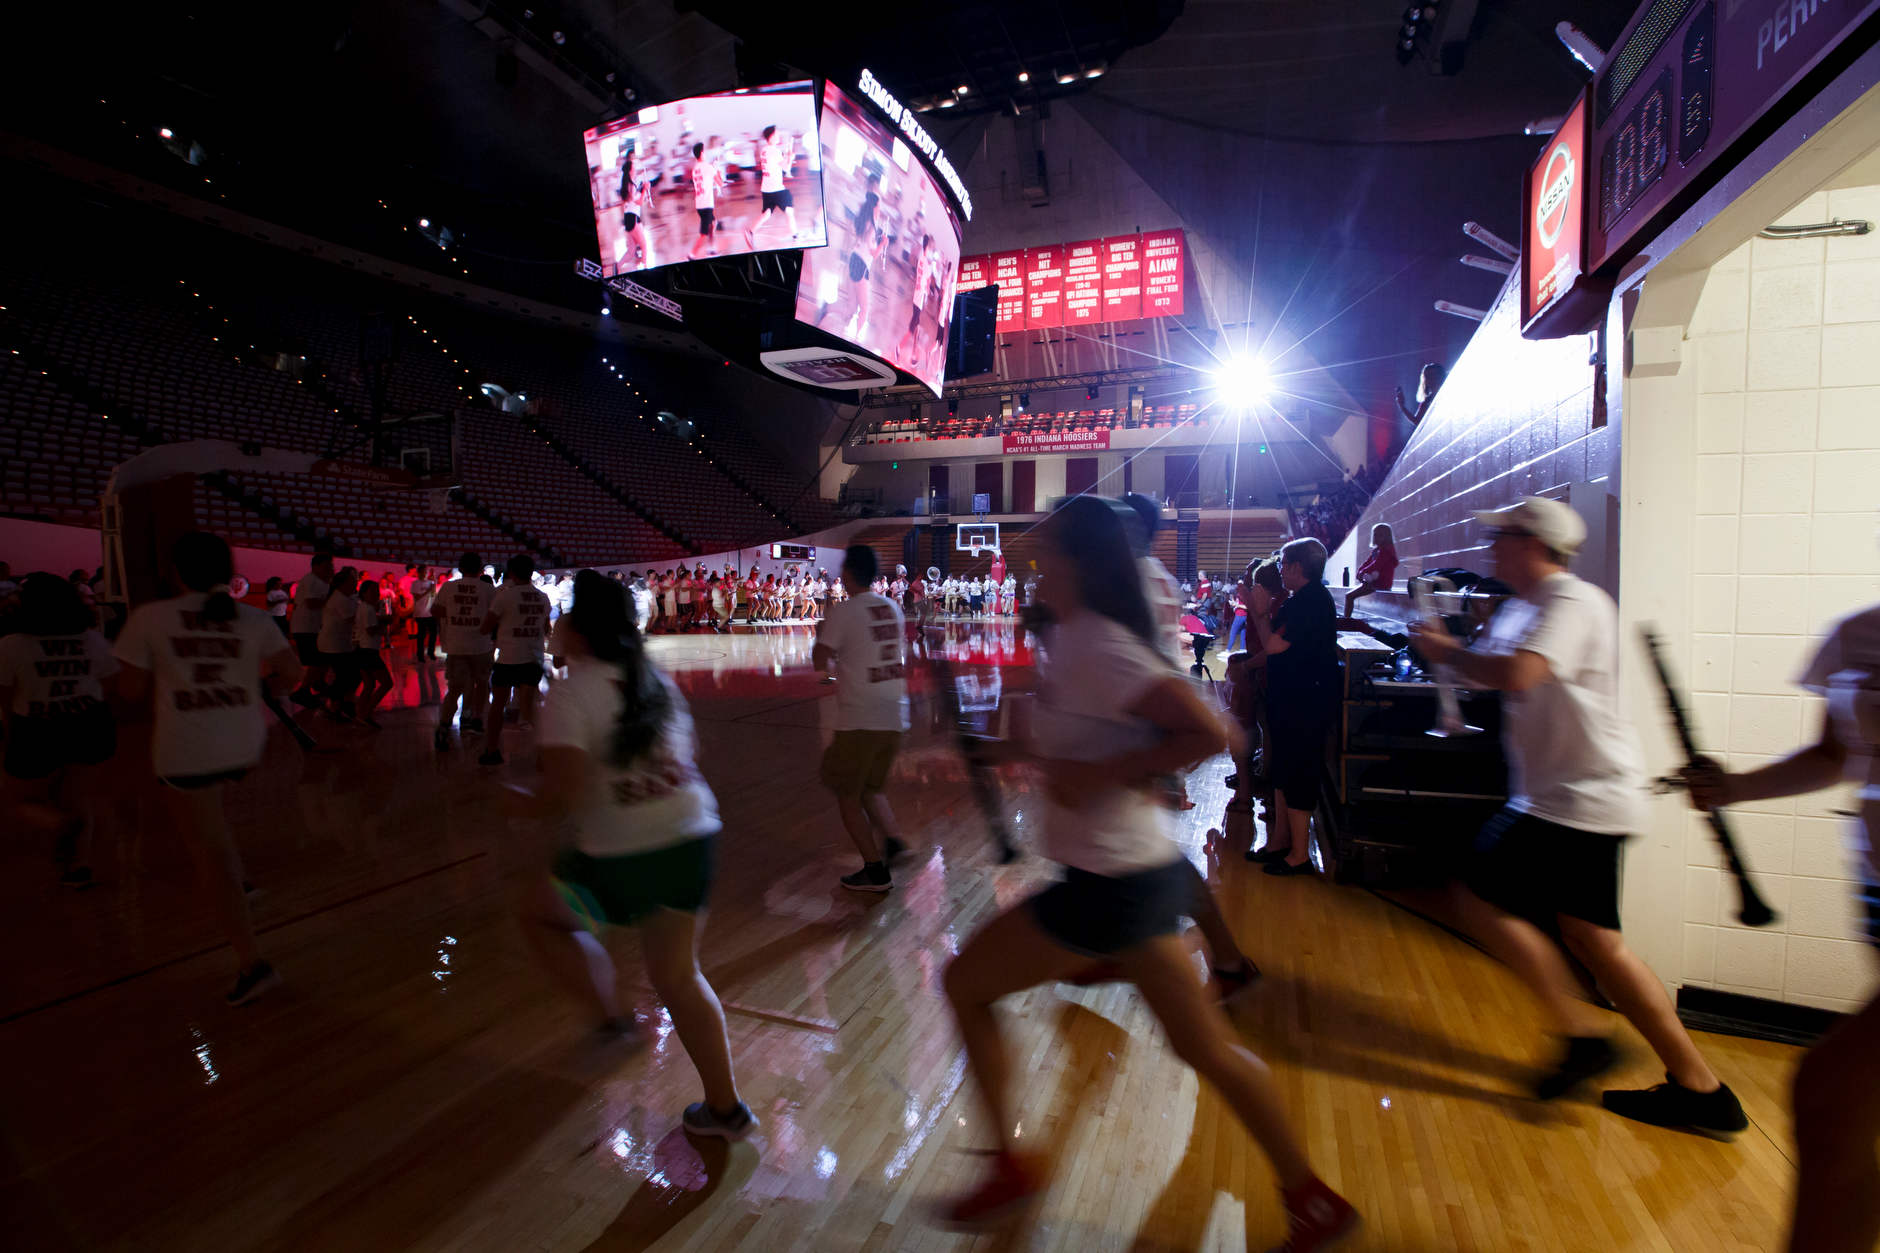 Members of the Indiana University Marching Hundred run onto the court during the Traditions and Spirit of IU at Assembly Hall on Friday, Aug. 17, 2018. (James Brosher/IU Communications)